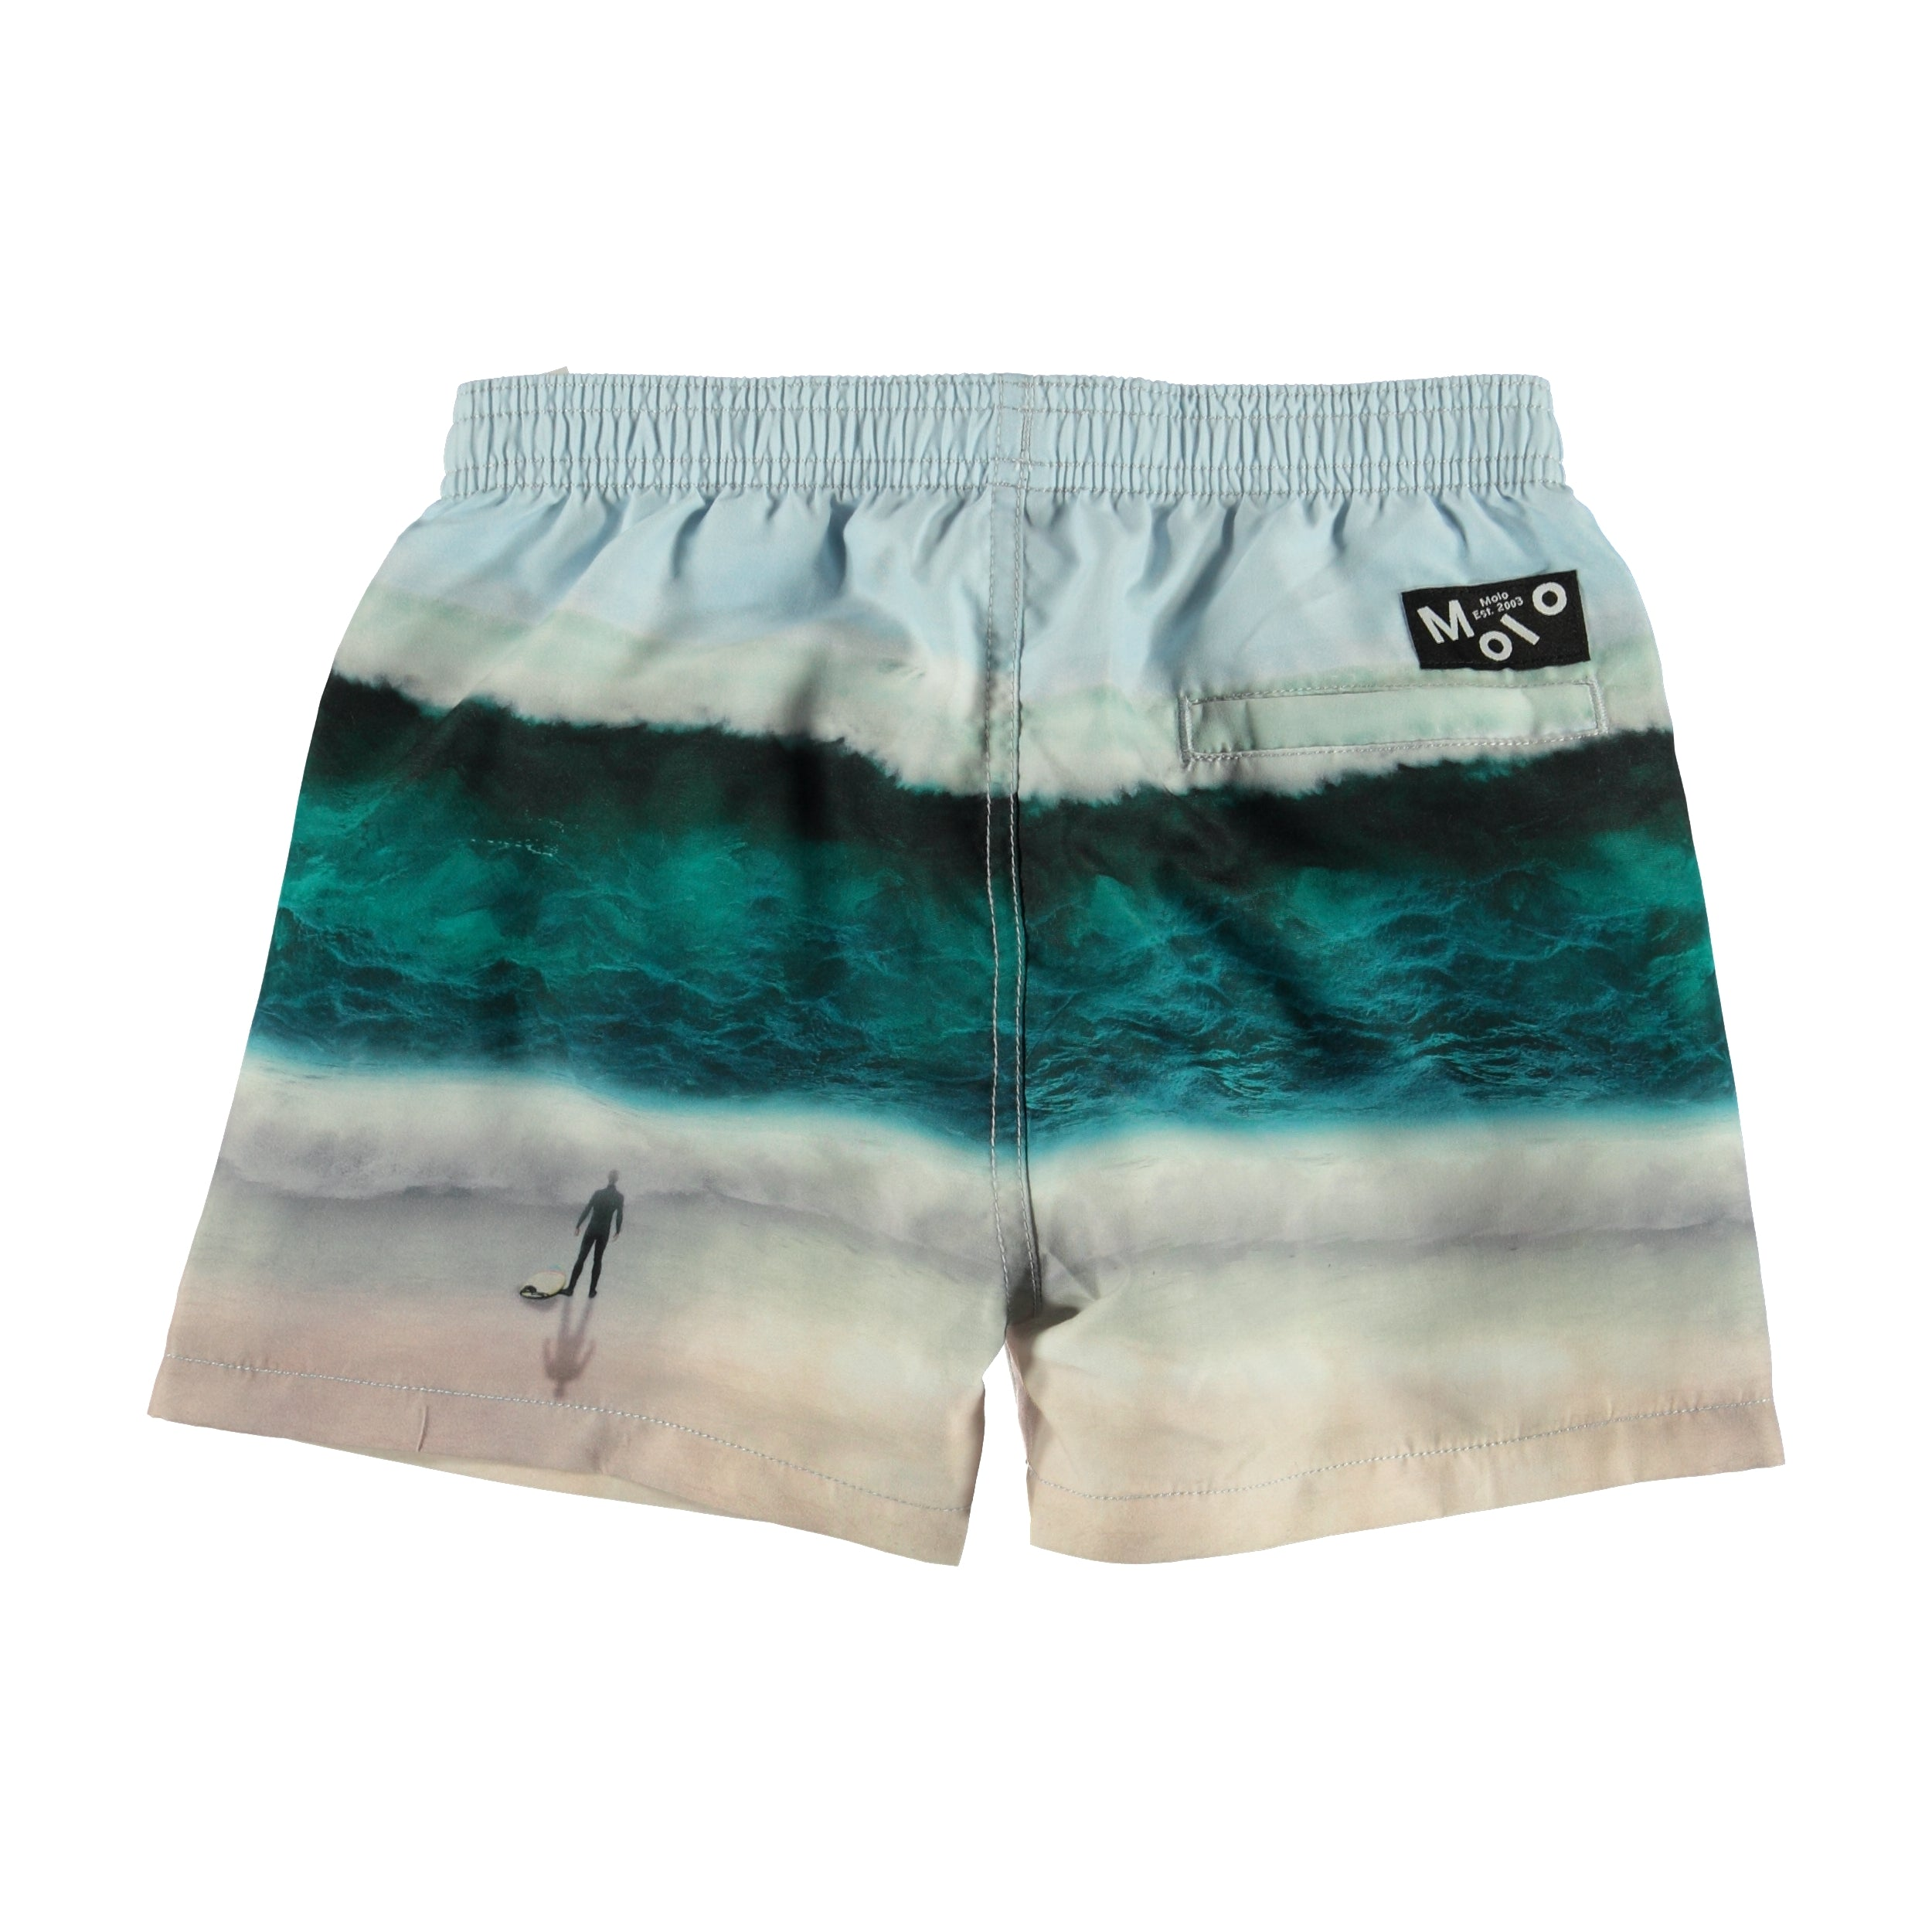 Molo Niko Swim Short - The Big Wave